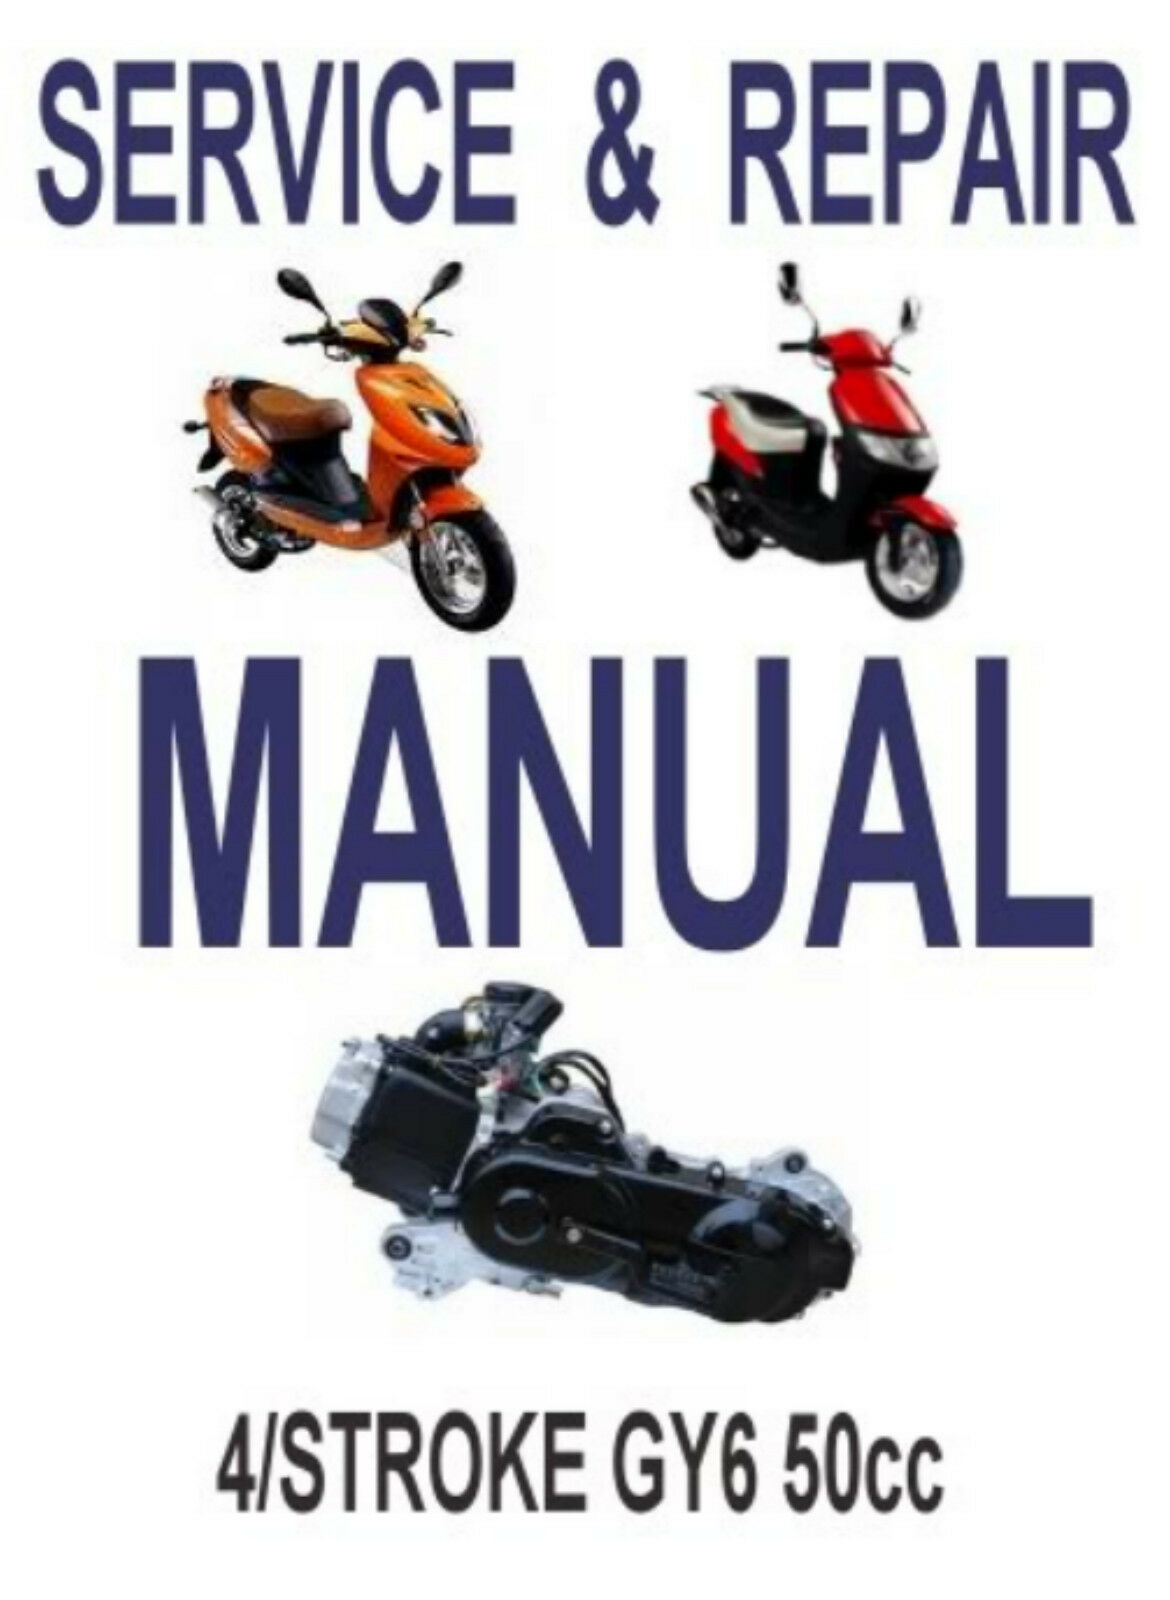 chinese scooter 50cc gy6 service repair shop manual cd lancer atm50 rh picclick com haynes chinese scooter service & repair manual free download haynes chinese scooter service & repair manual 4768 pdf